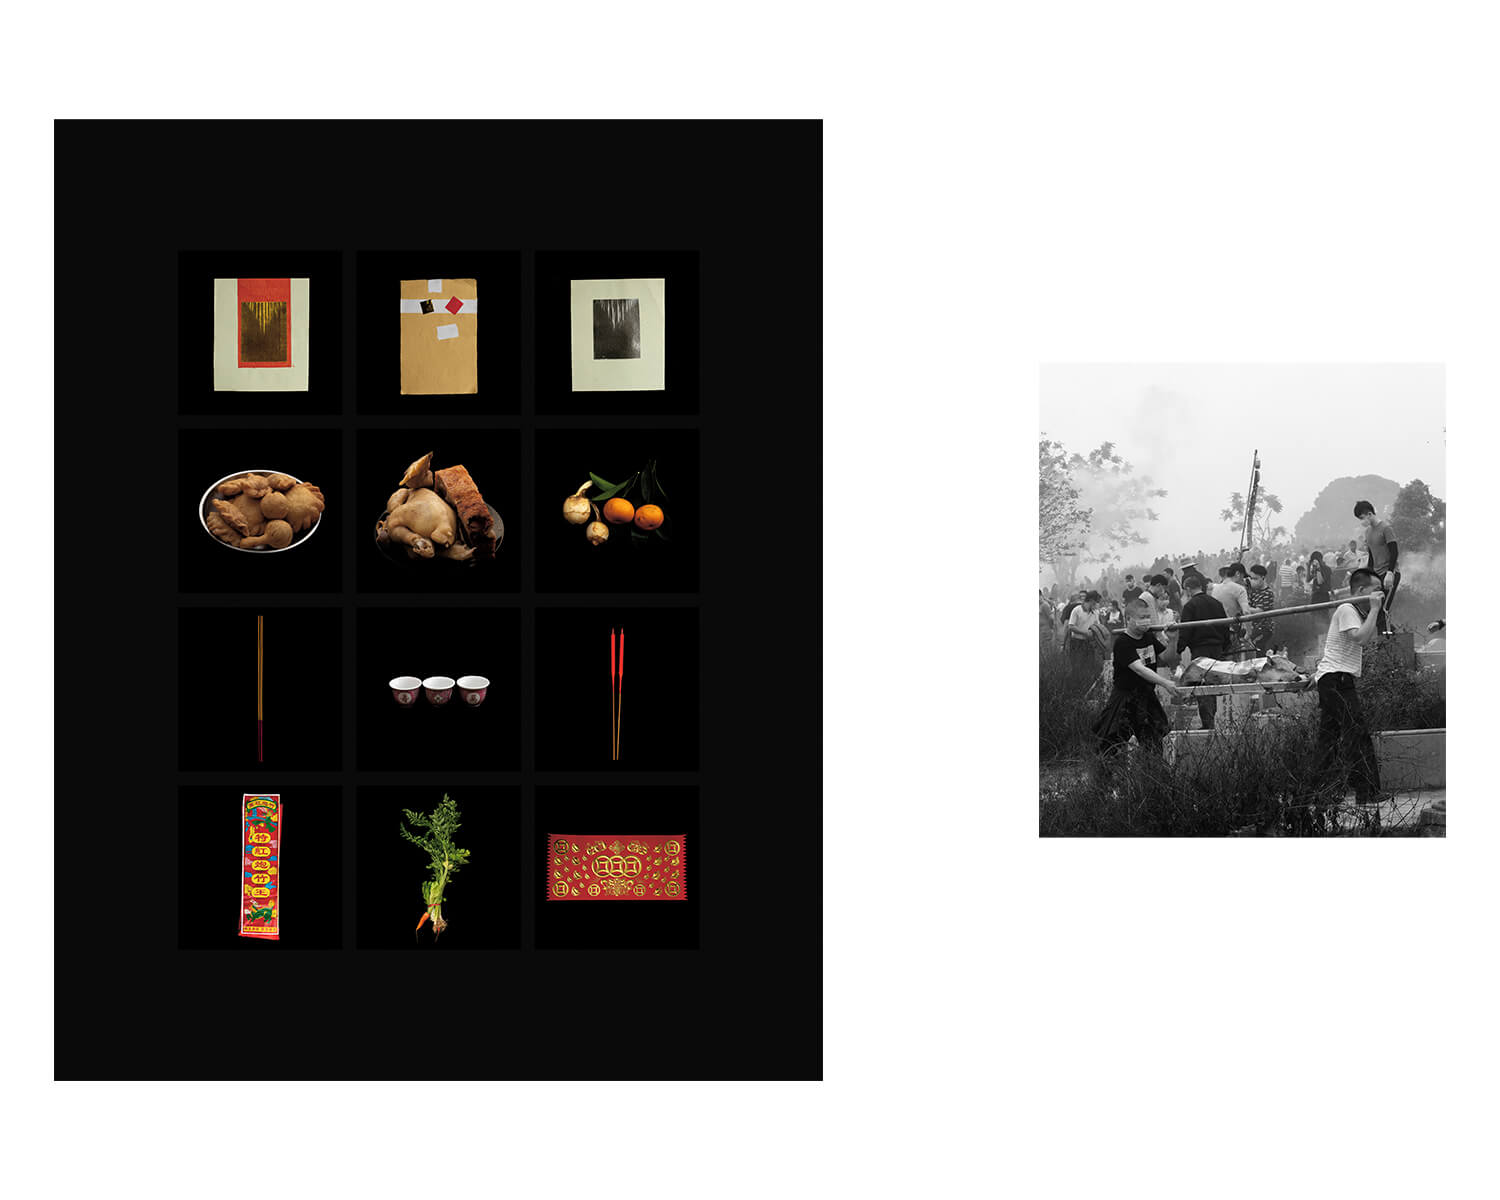 Tony Mak - To The West Of The Solitary Sea. Grid of still lifes on black background, paired with B+W image of crowds and people carrying pig